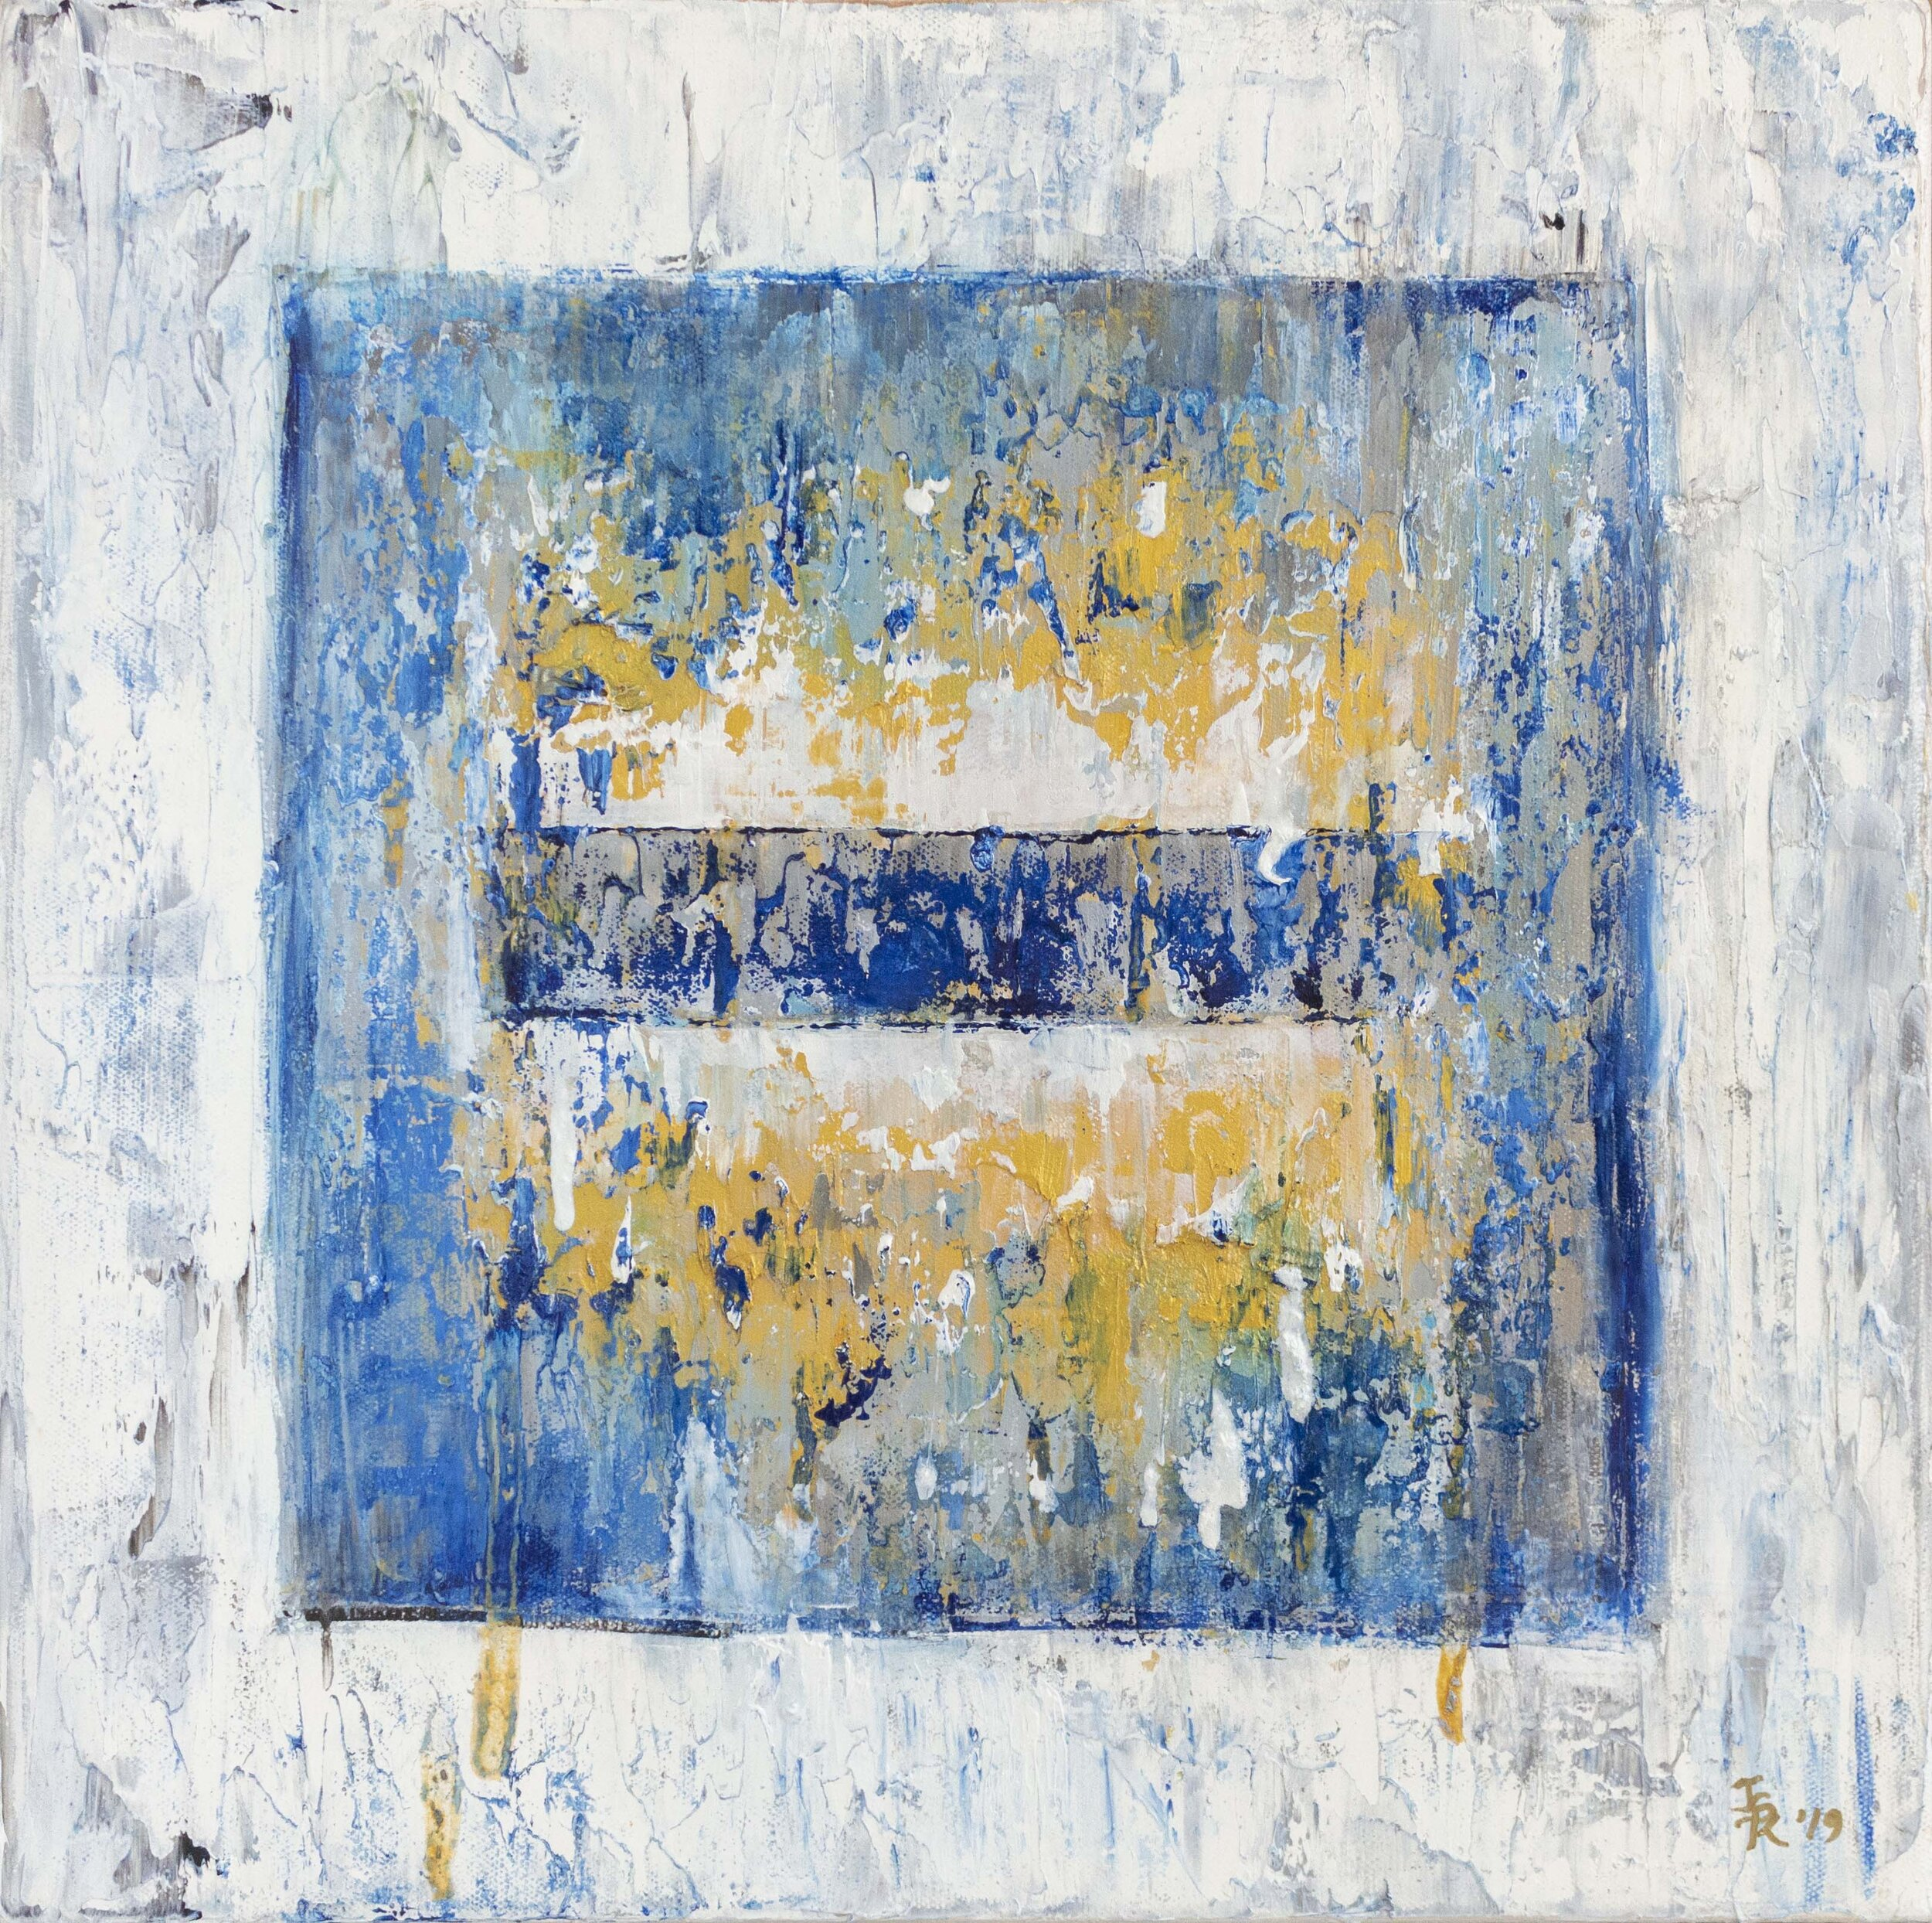 Ice Cube Small Blue, 2019